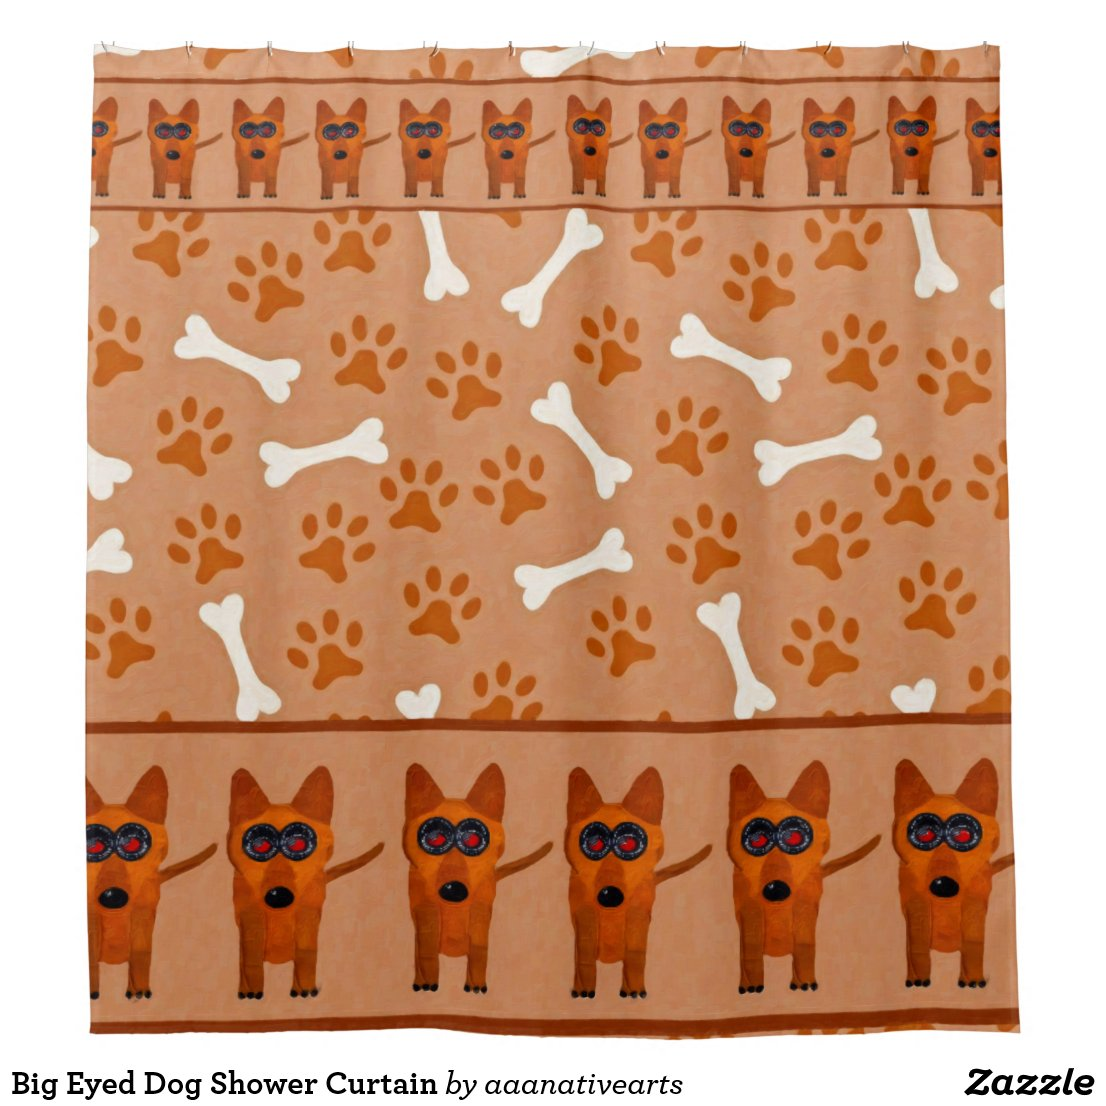 Big Eyed Dog Shower Curtain